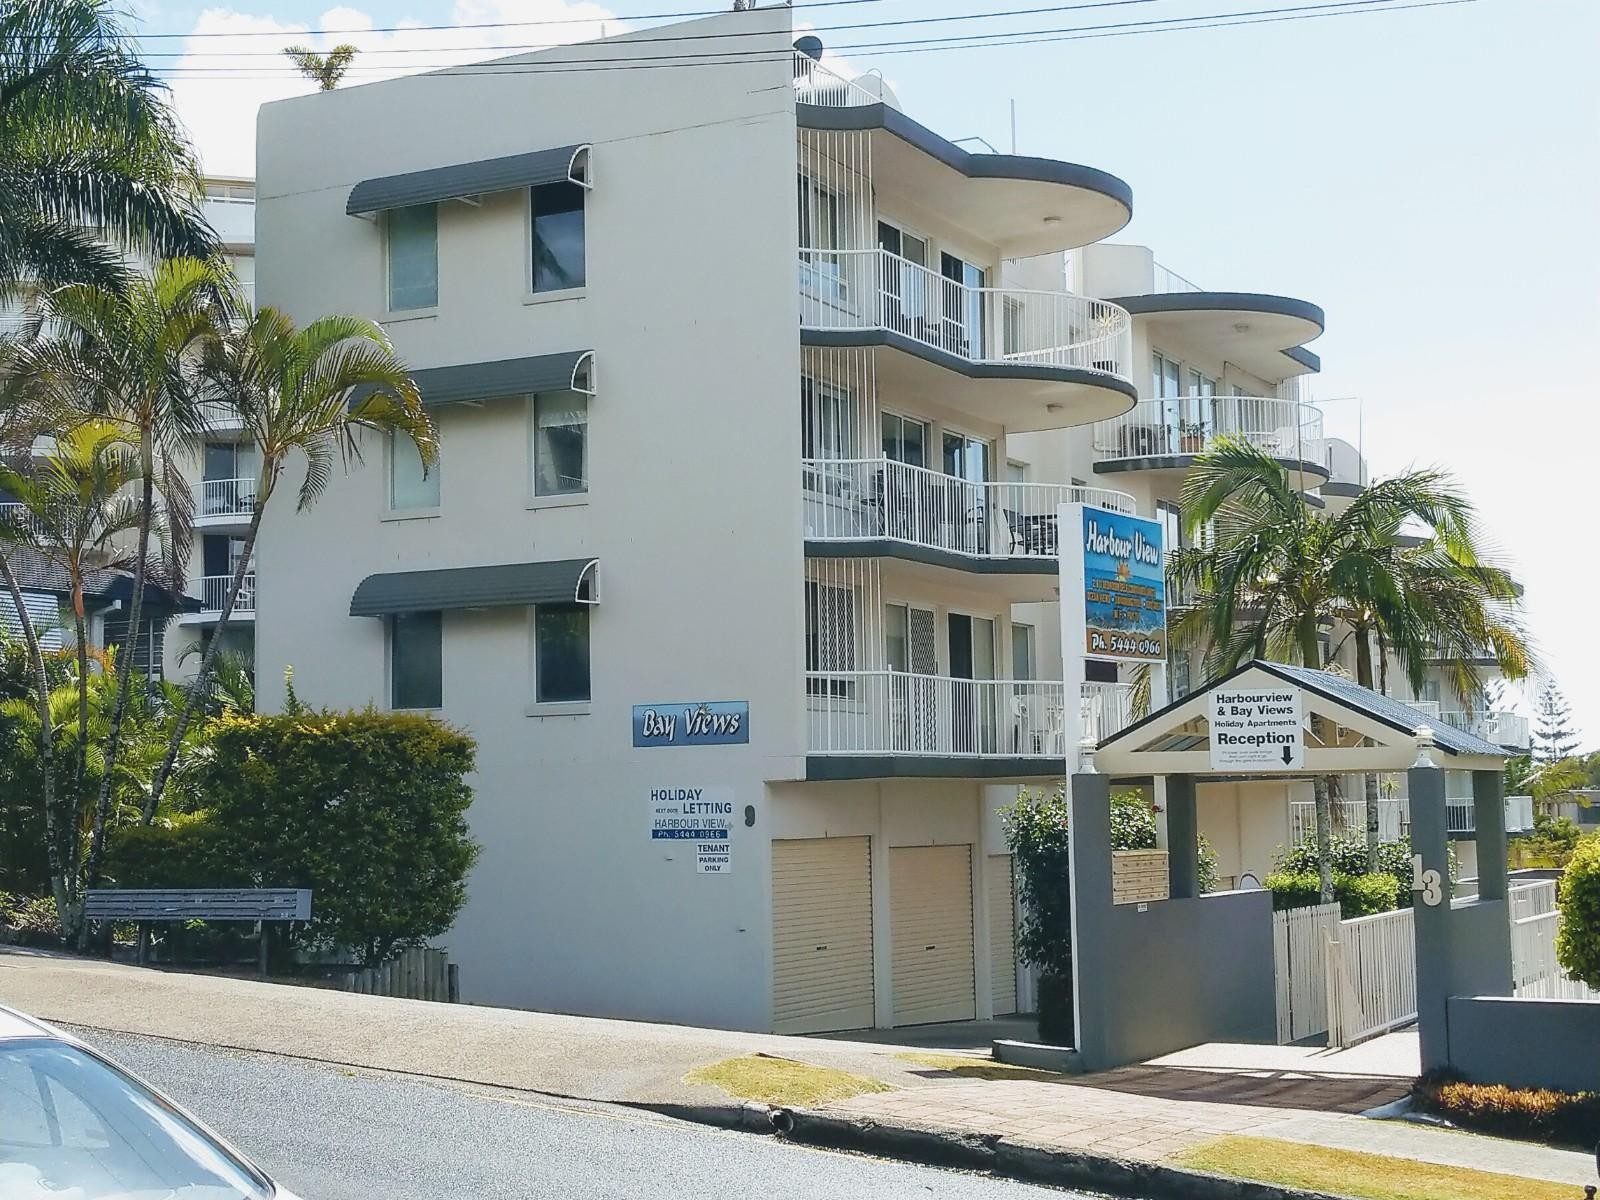 EXCELLENT BUYING OPPORTUNITY SO CLOSE TO THE BEACH